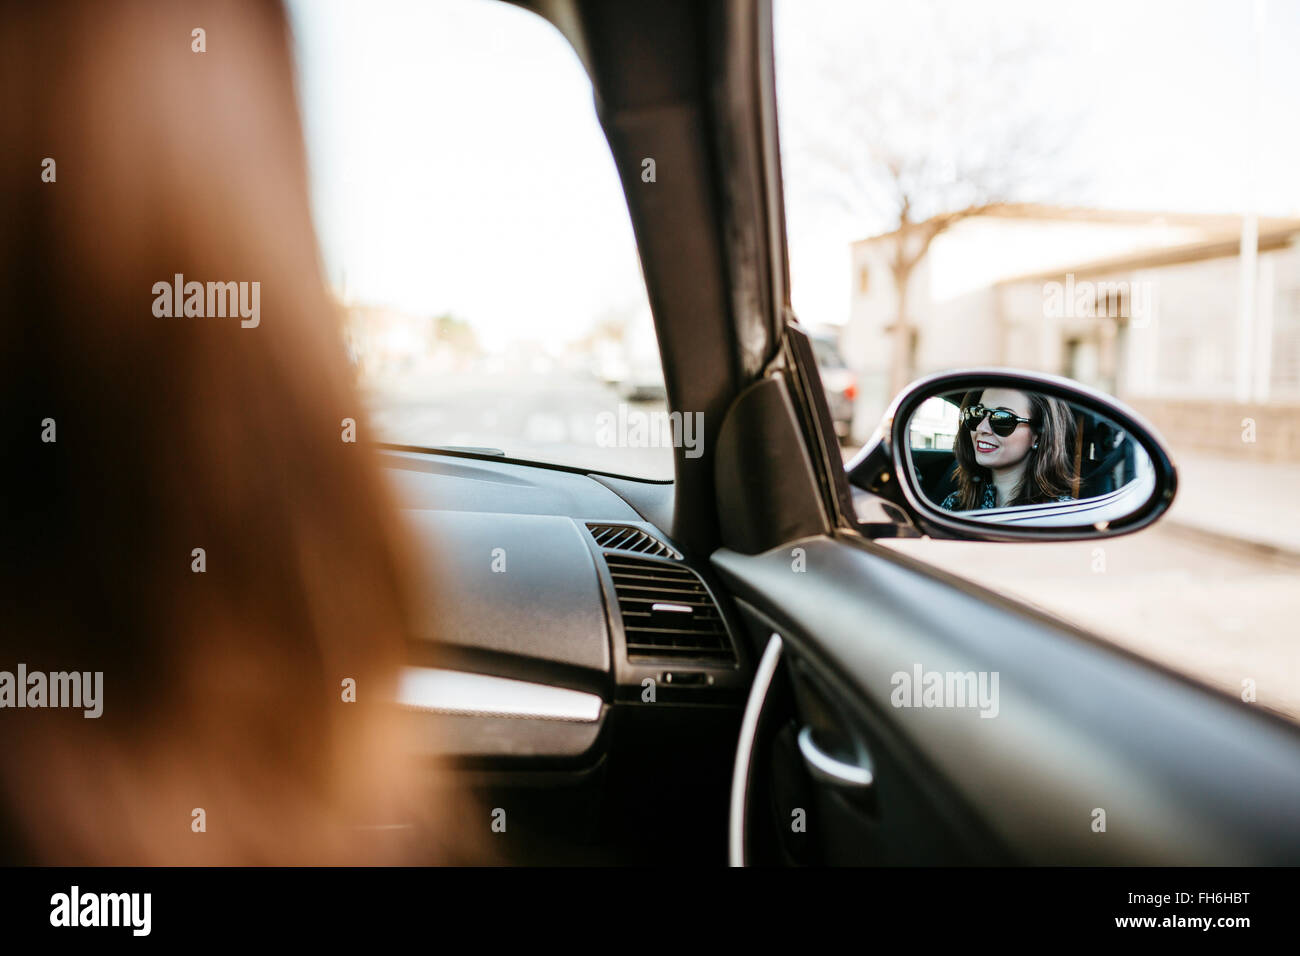 Female front passanger in car reflected in car mirror - Stock Image